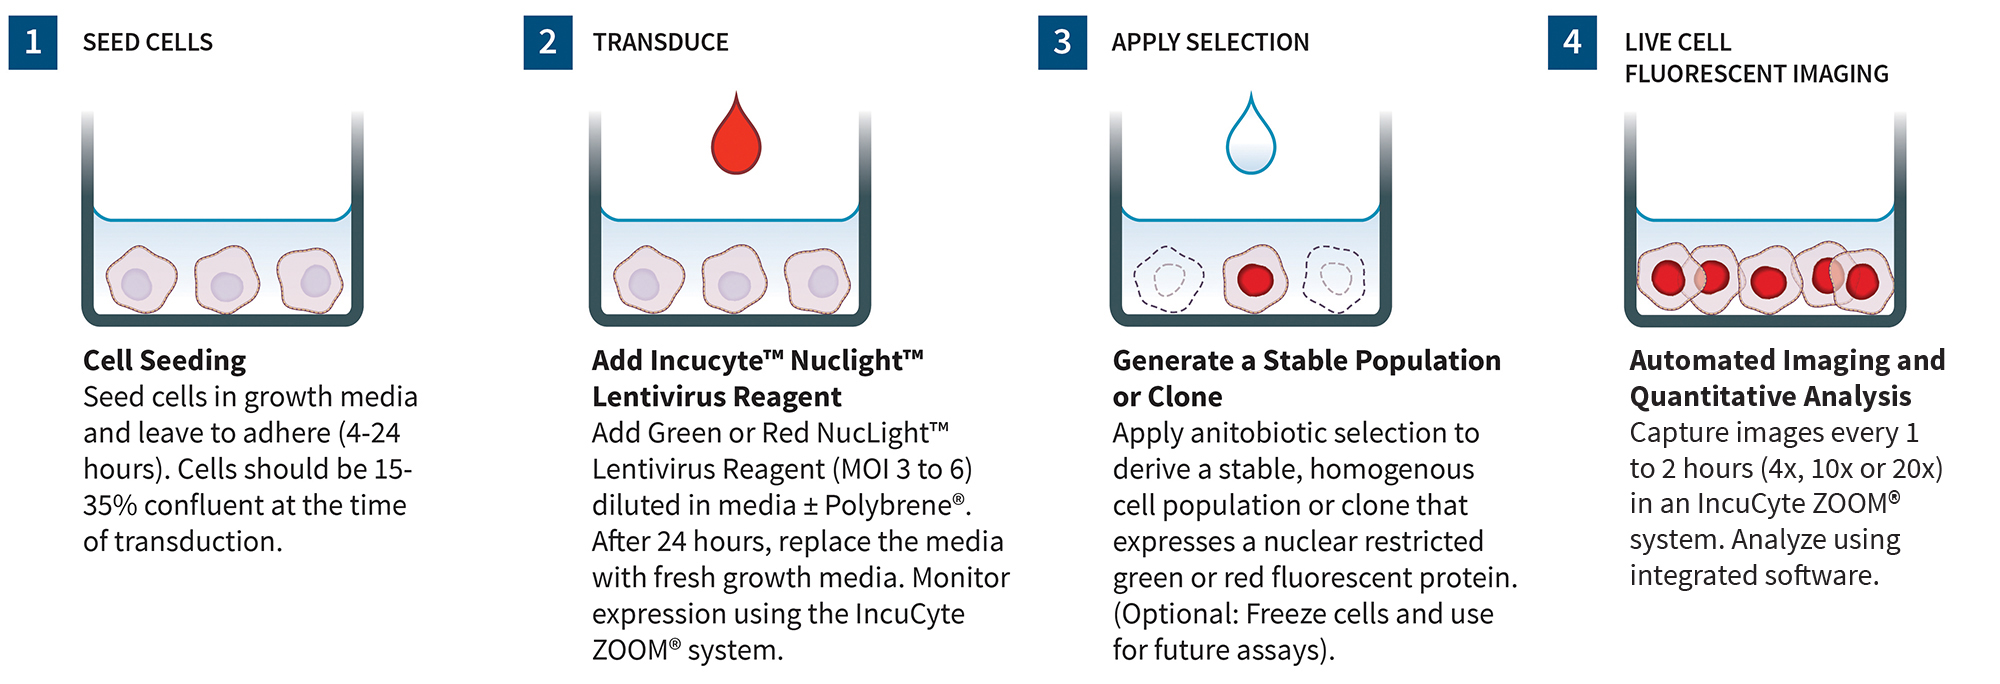 NucLight Red Lentivirus Reagent